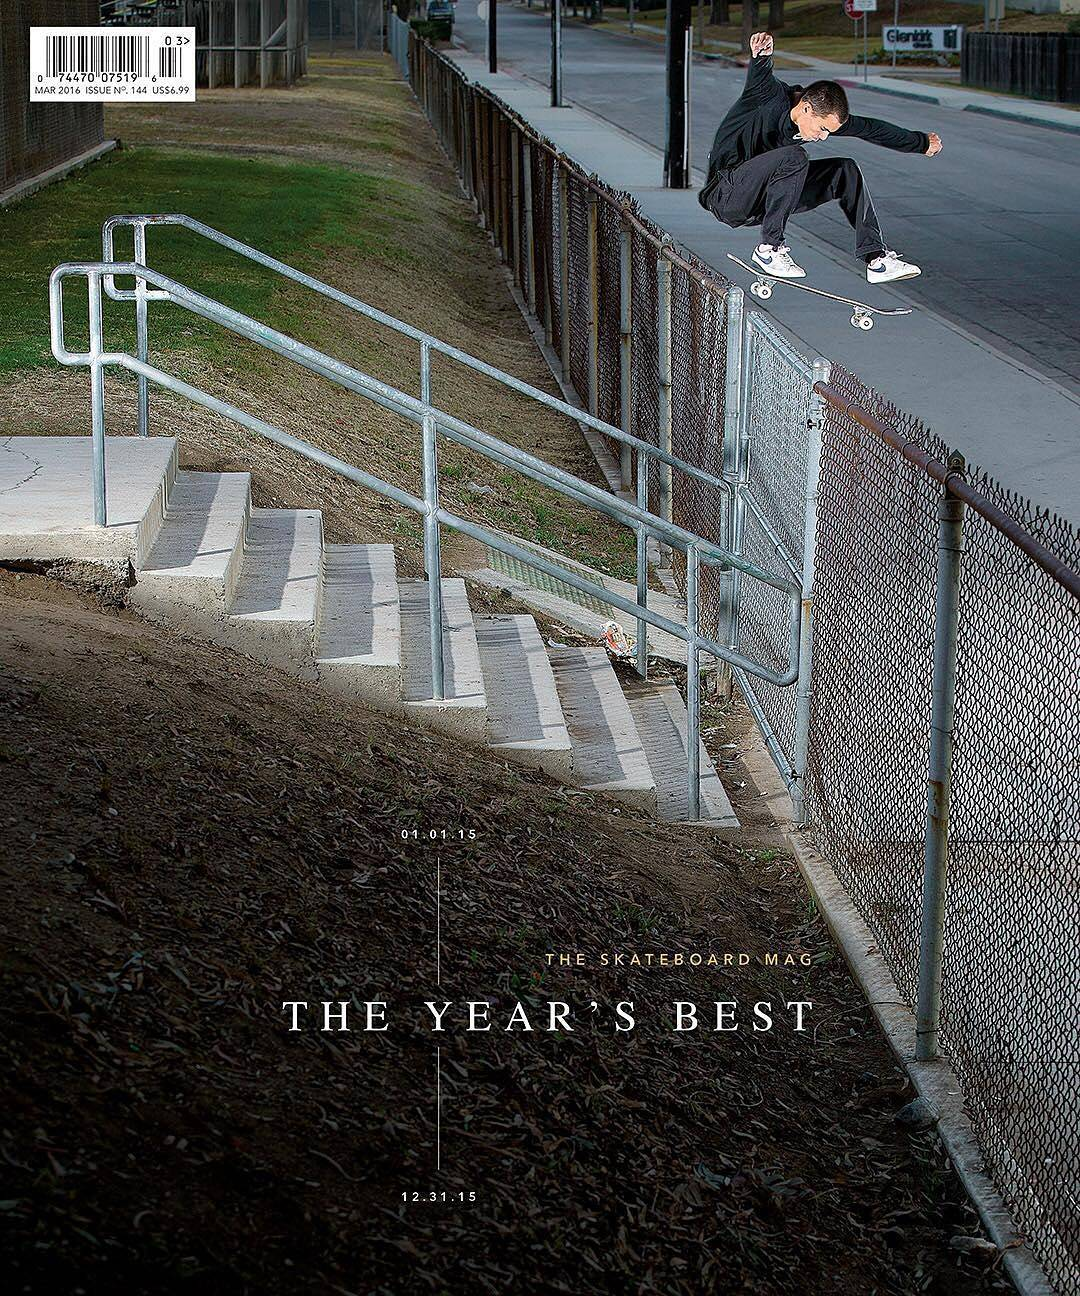 12501769 175629026126323 1880060448 n - Congrats to @masonsilva for am of the year and cover on the new @theskateboardma...